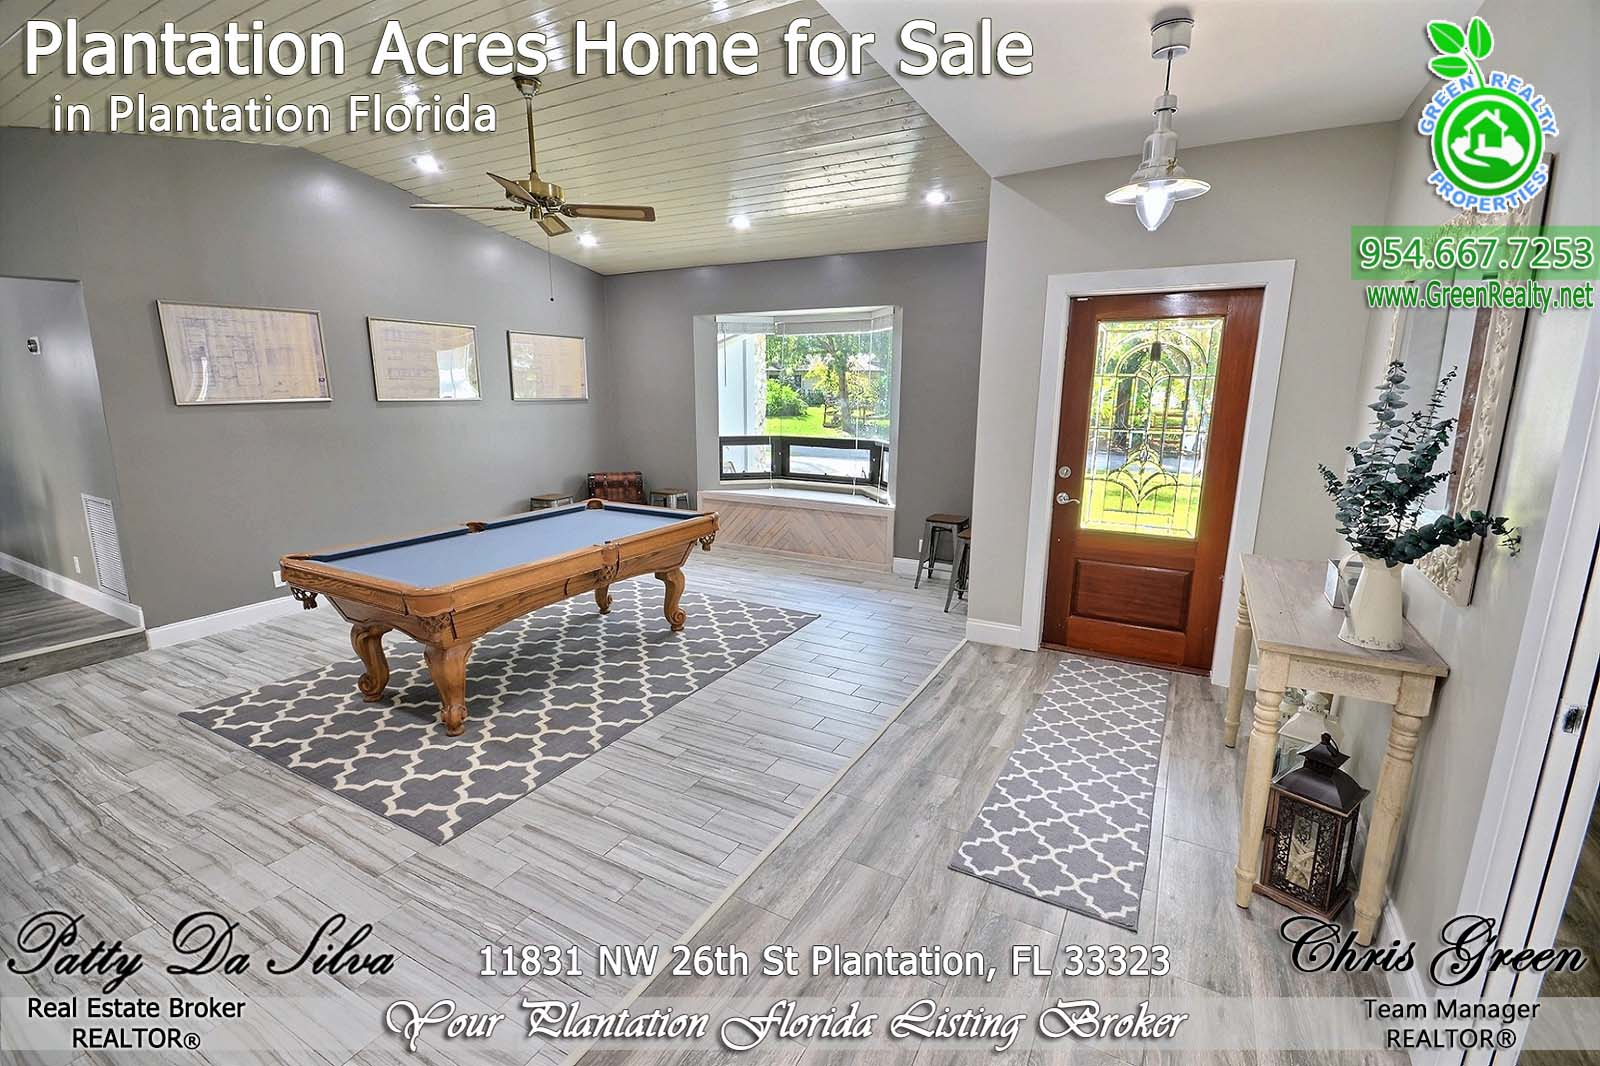 Homes For Sale in Plantation Acres